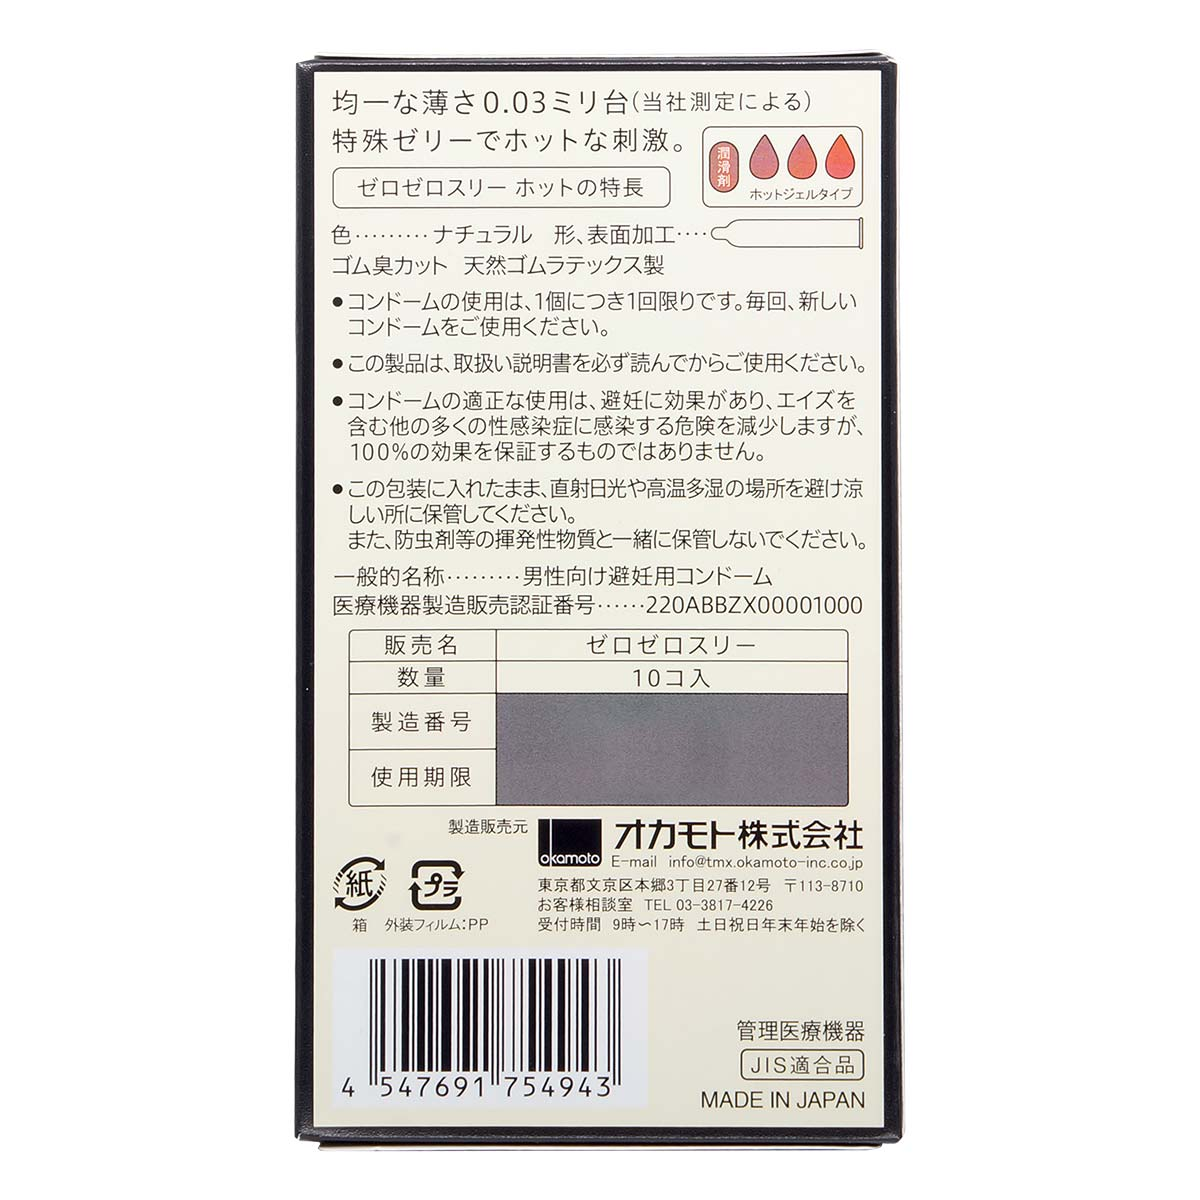 Zero Zero Three 0.03 Hot (Japan Edition) 10's Pack Latex Condom